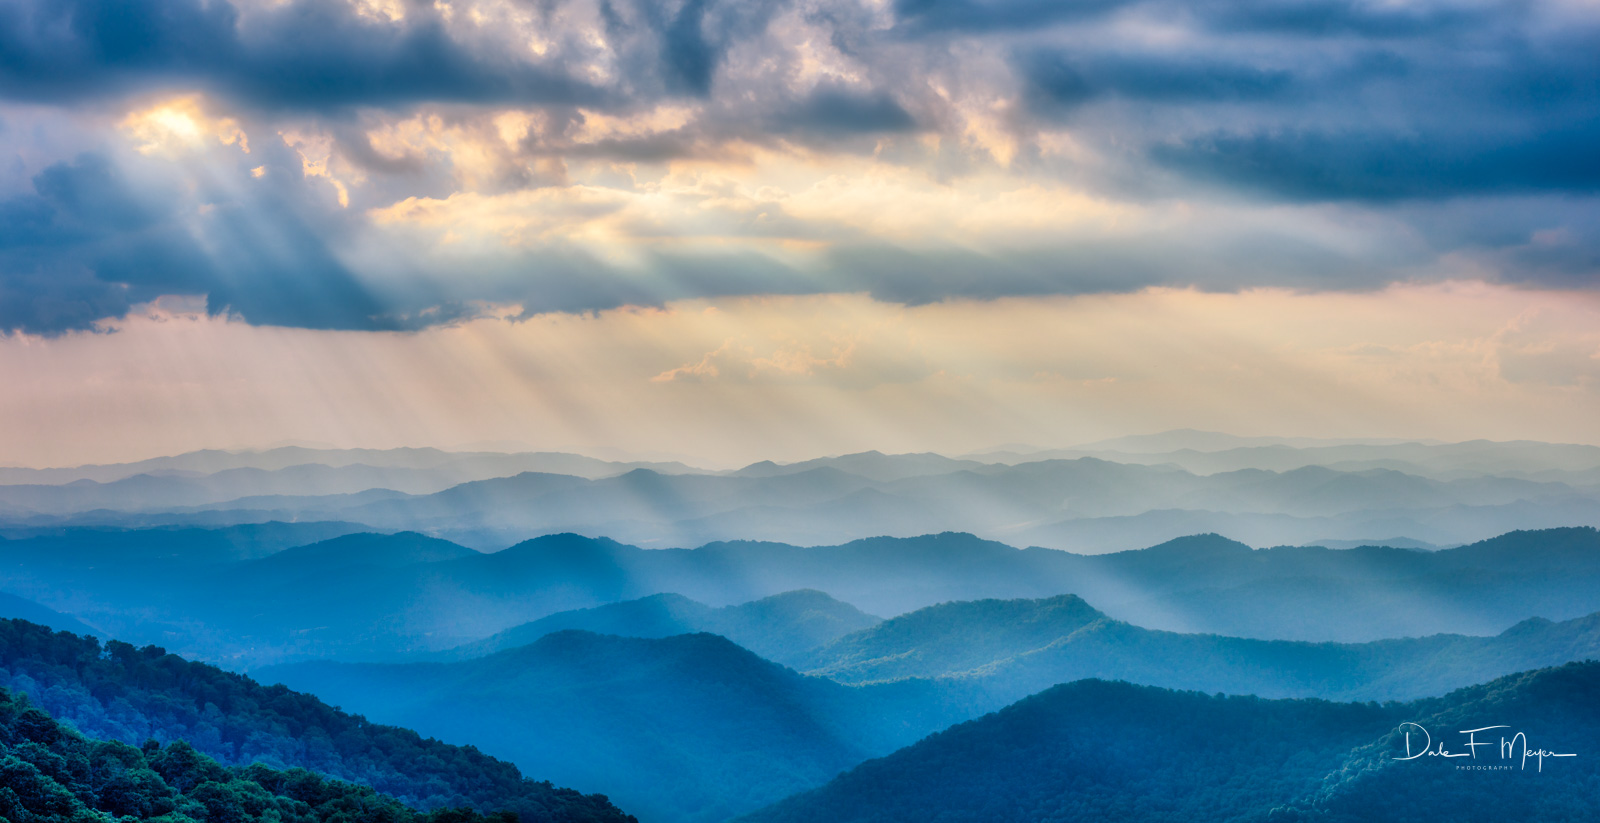 A fleeting moment of Heavens Light beaming down over the Blue Ridge Mountains south of Ashville North Carolina on the Blue Ridge...